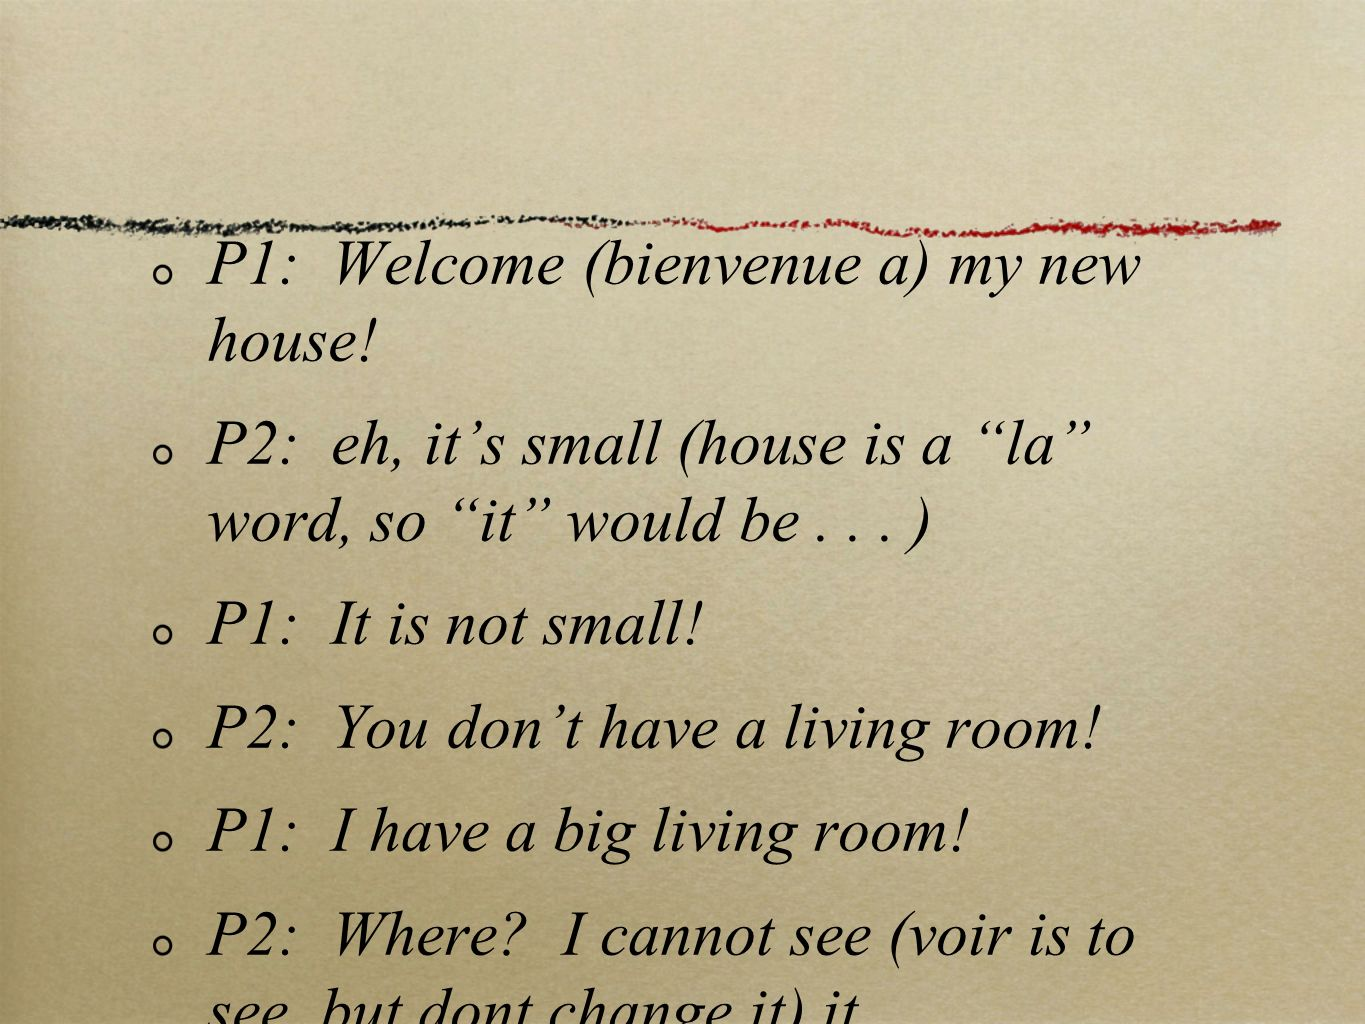 P1: Welcome (bienvenue a) my new house. P2: eh, its small (house is a la word, so it would be...